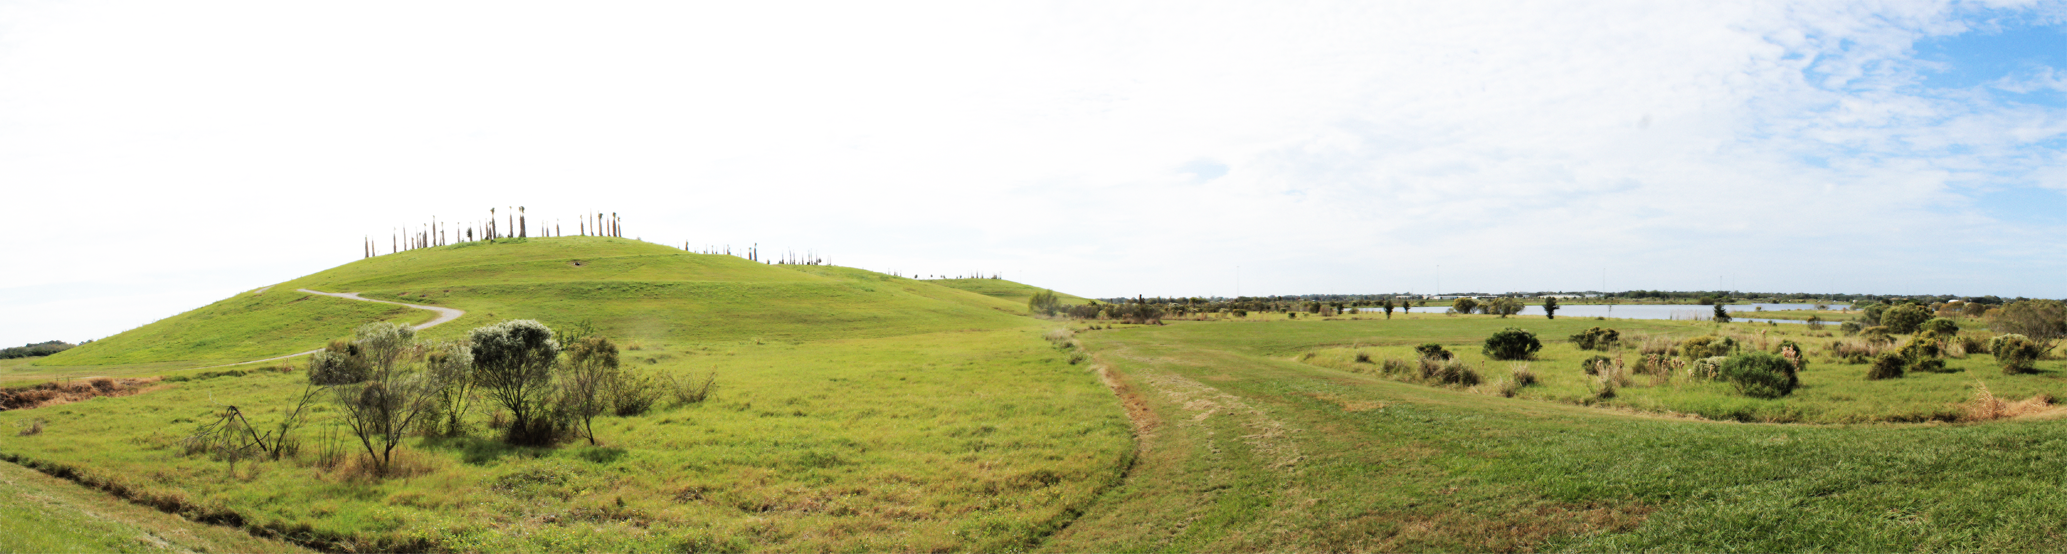 A site Panorama showing the capped mound and flood plain wetlands.